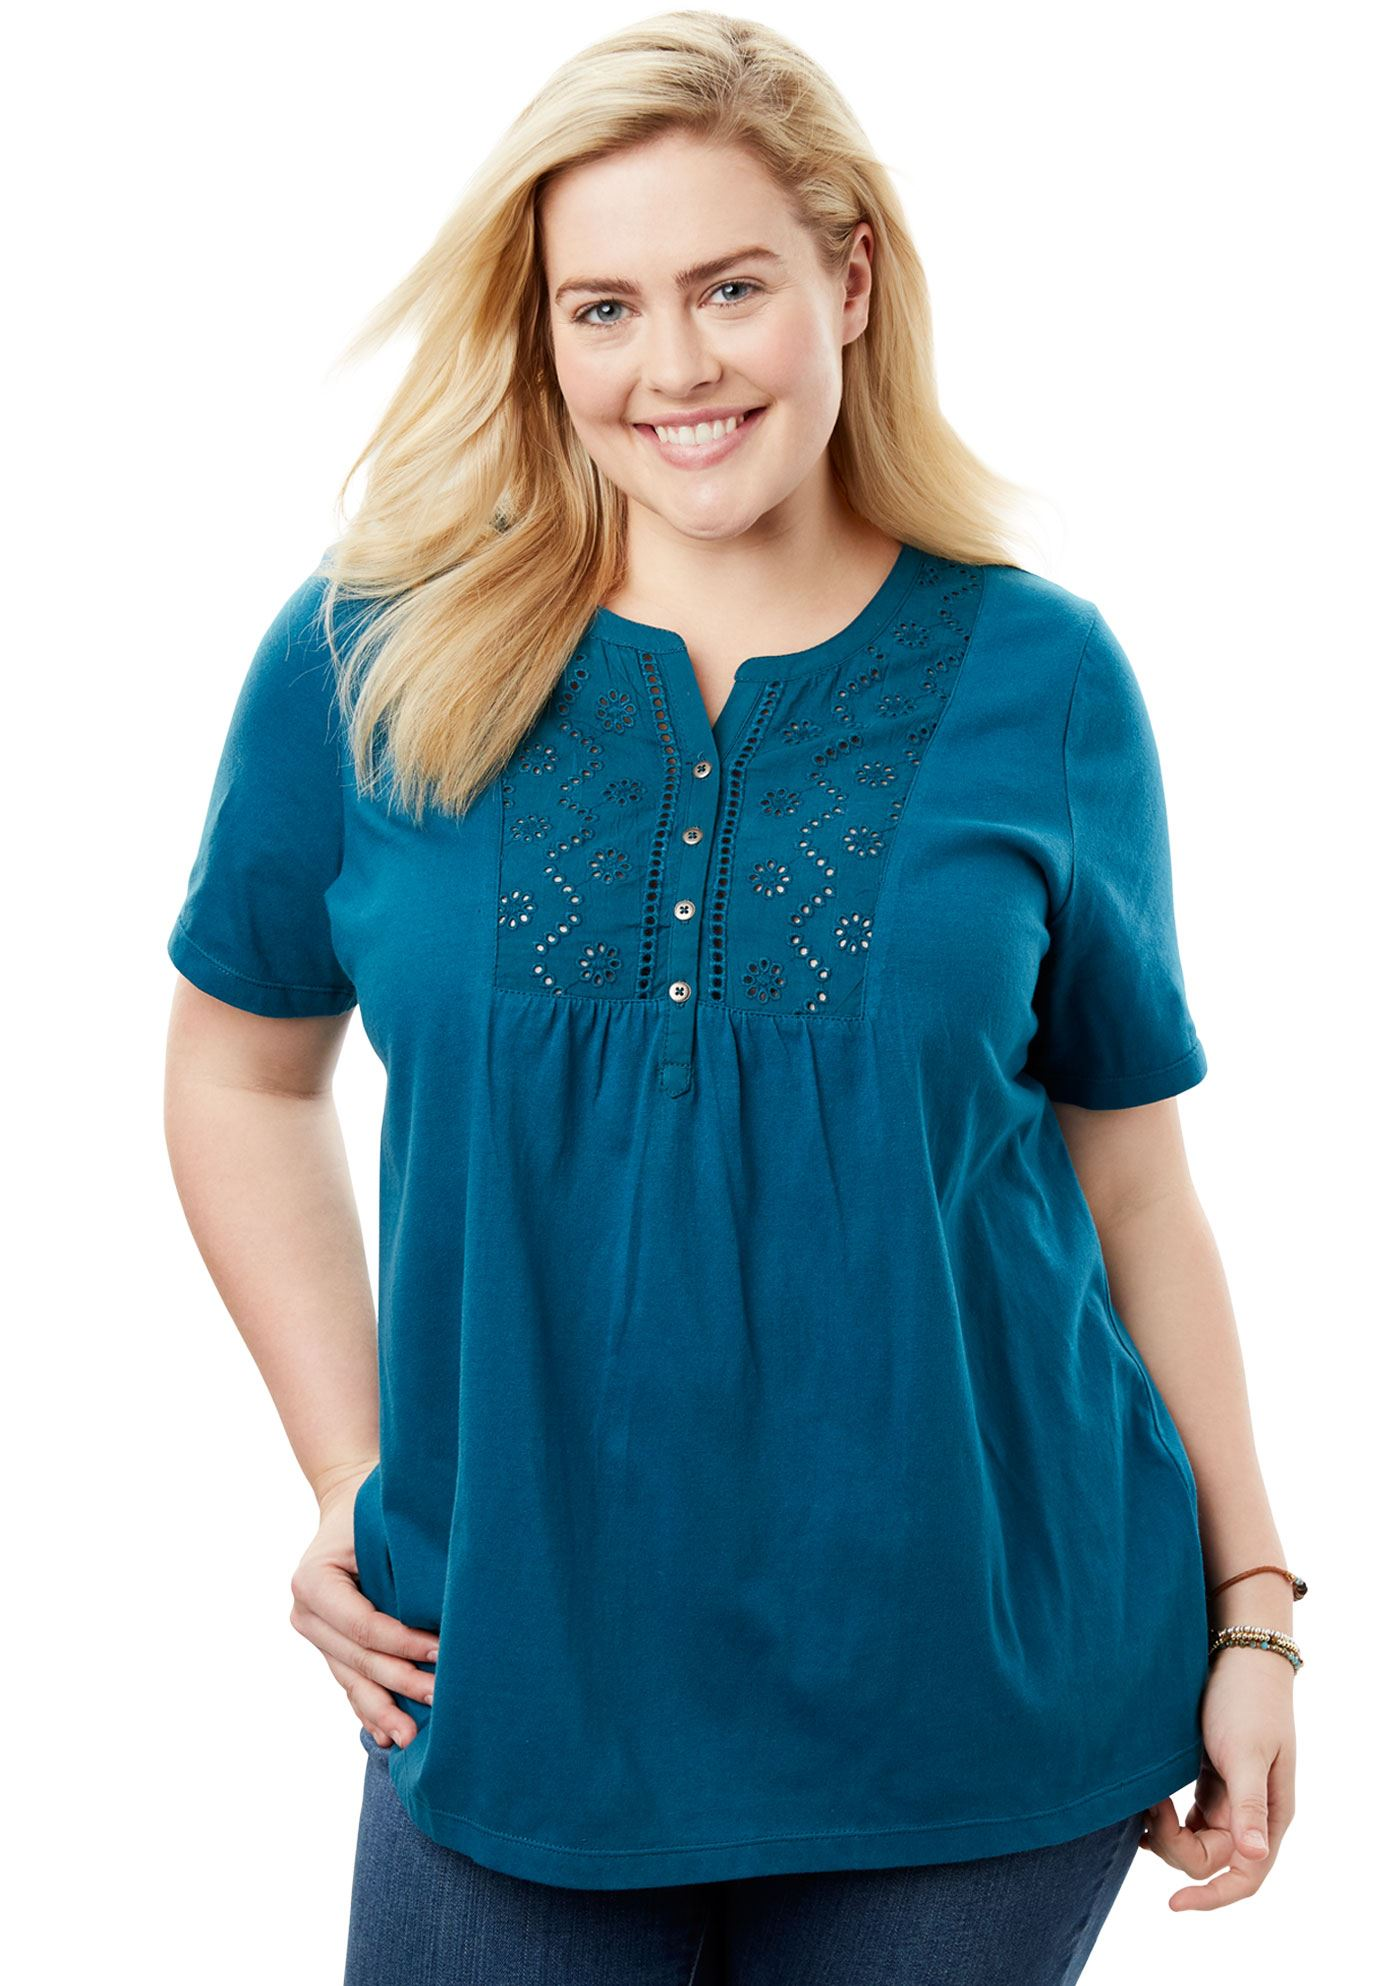 a2ddd734ae4 Top in soft knit with eyelet embroidery - Women s Plus Size Clothing ...